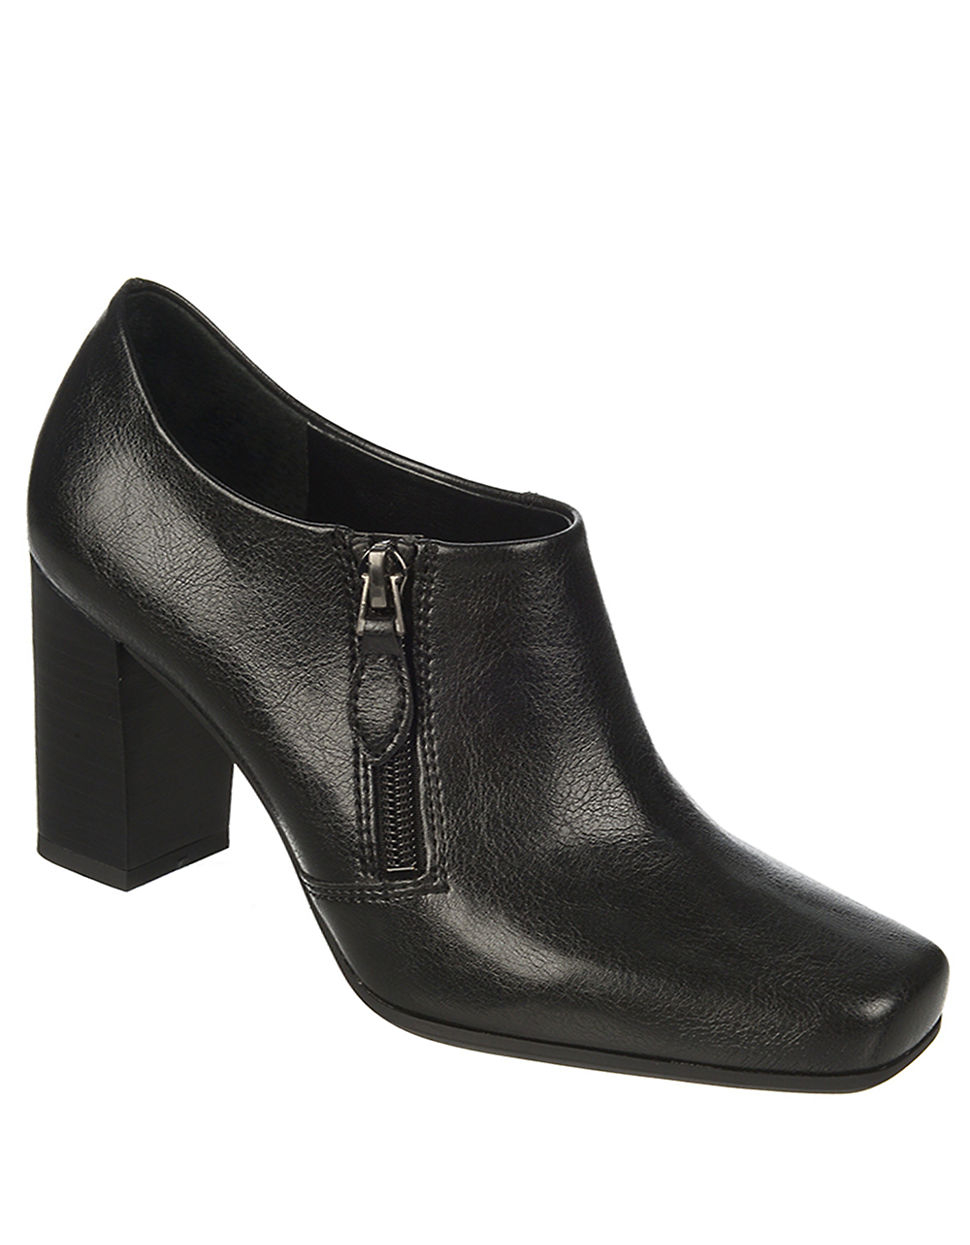 franco sarto zodiac faux leather ankle boots in black